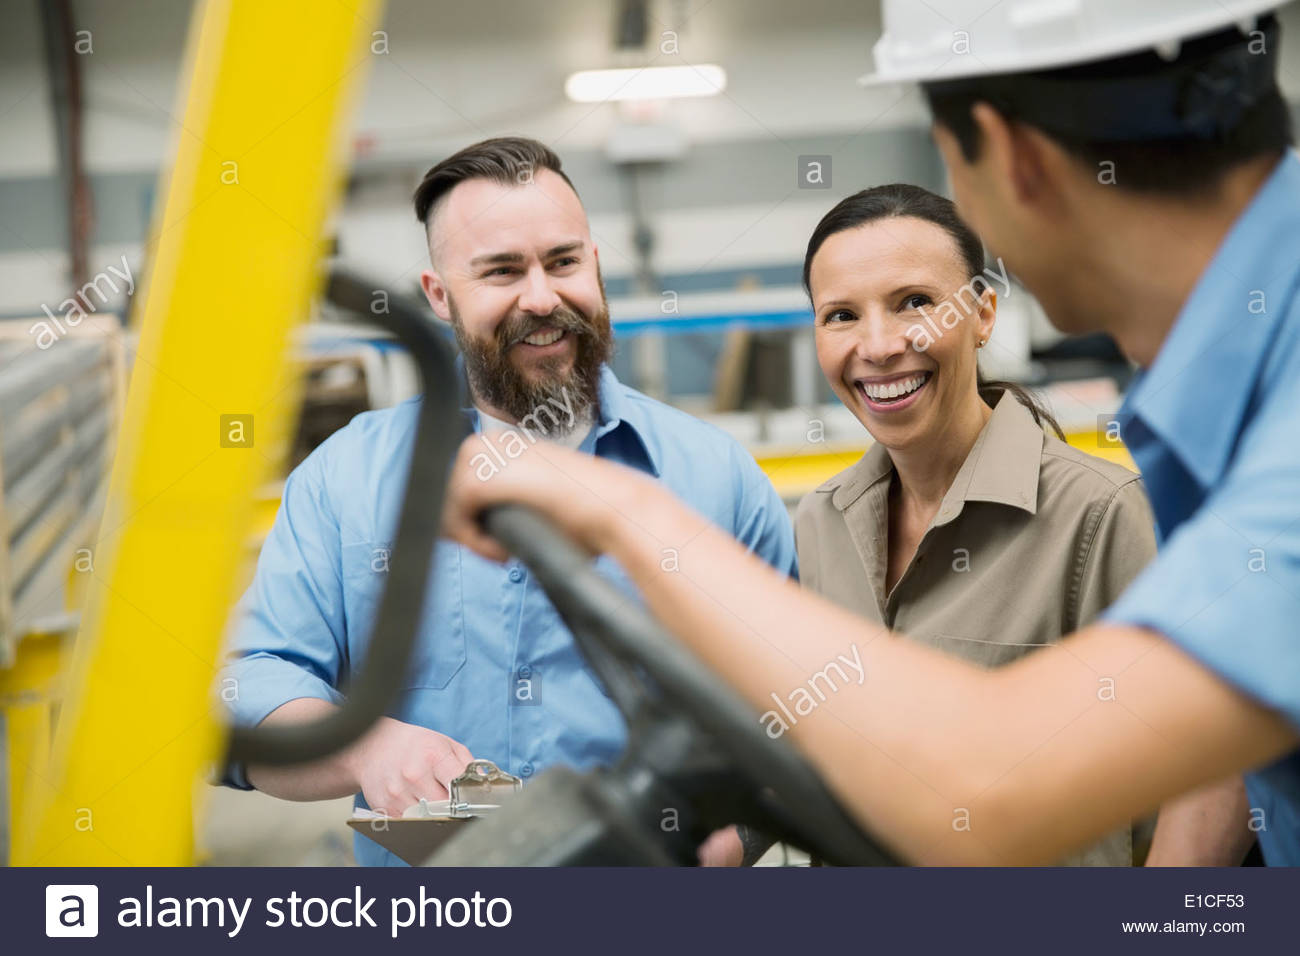 Workers talking at forklift - Stock Image